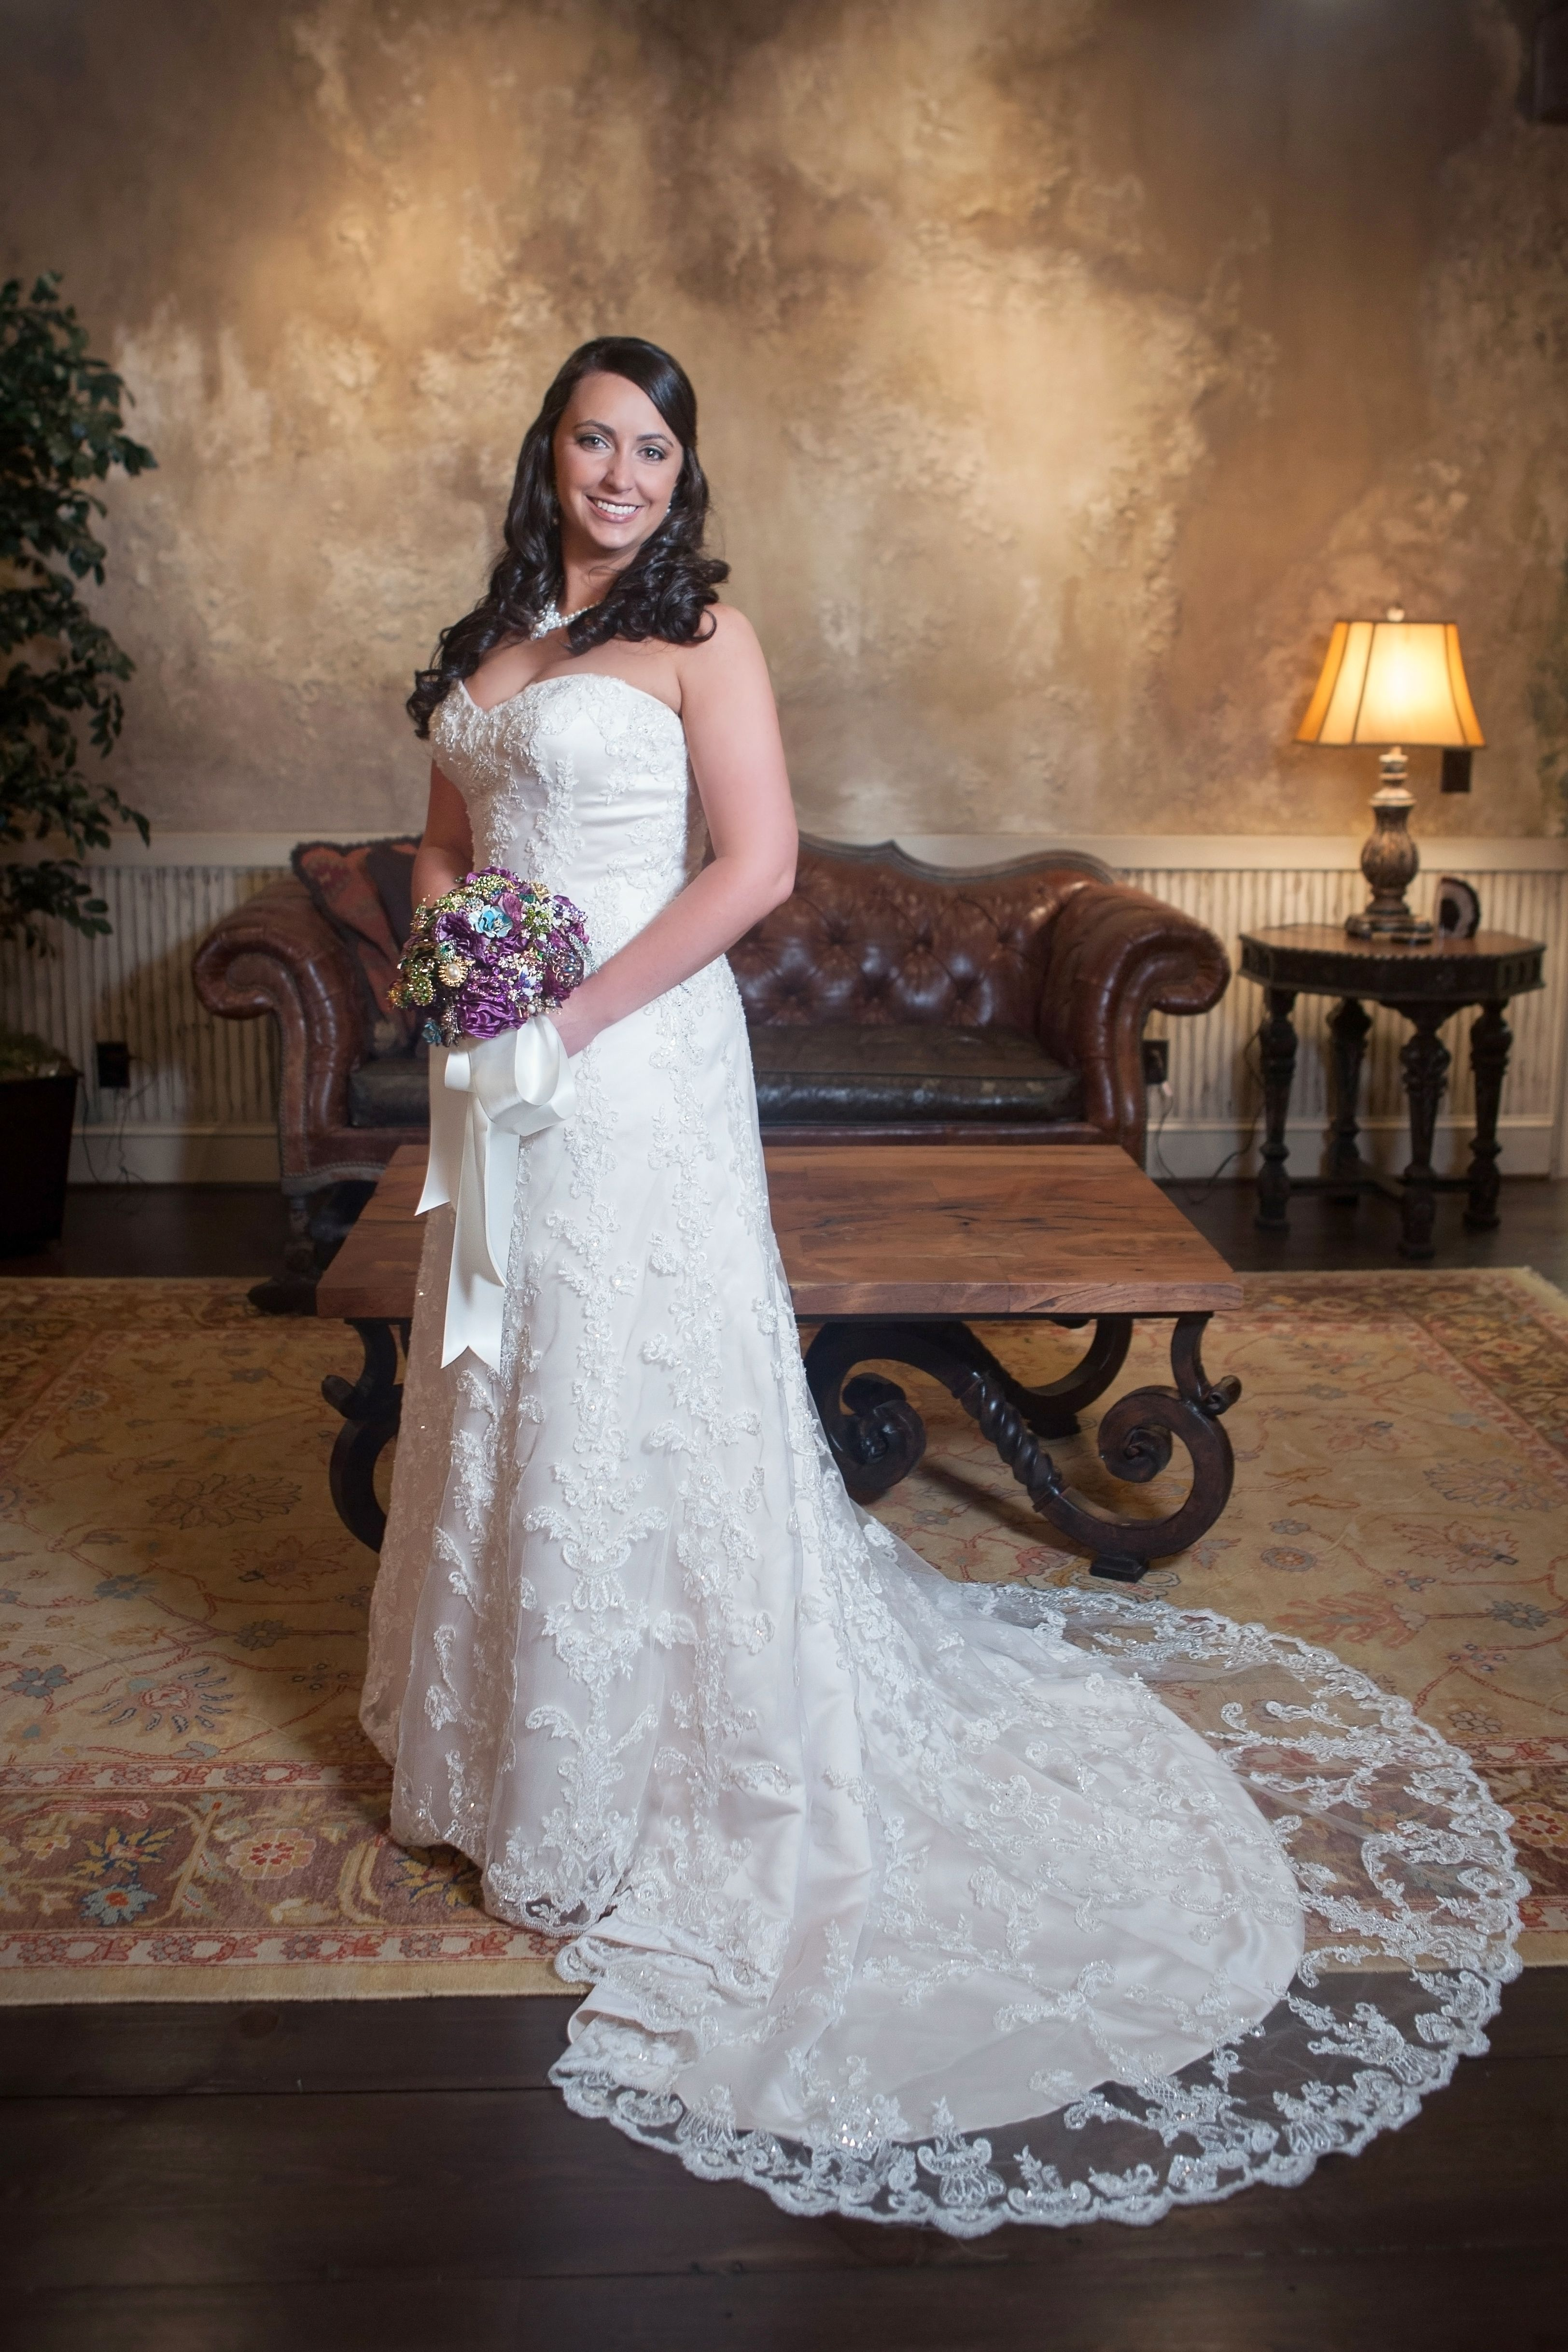 A Perfect Spray Tan Gives Any Bride The Confidence To Shine On Her Wedding Day